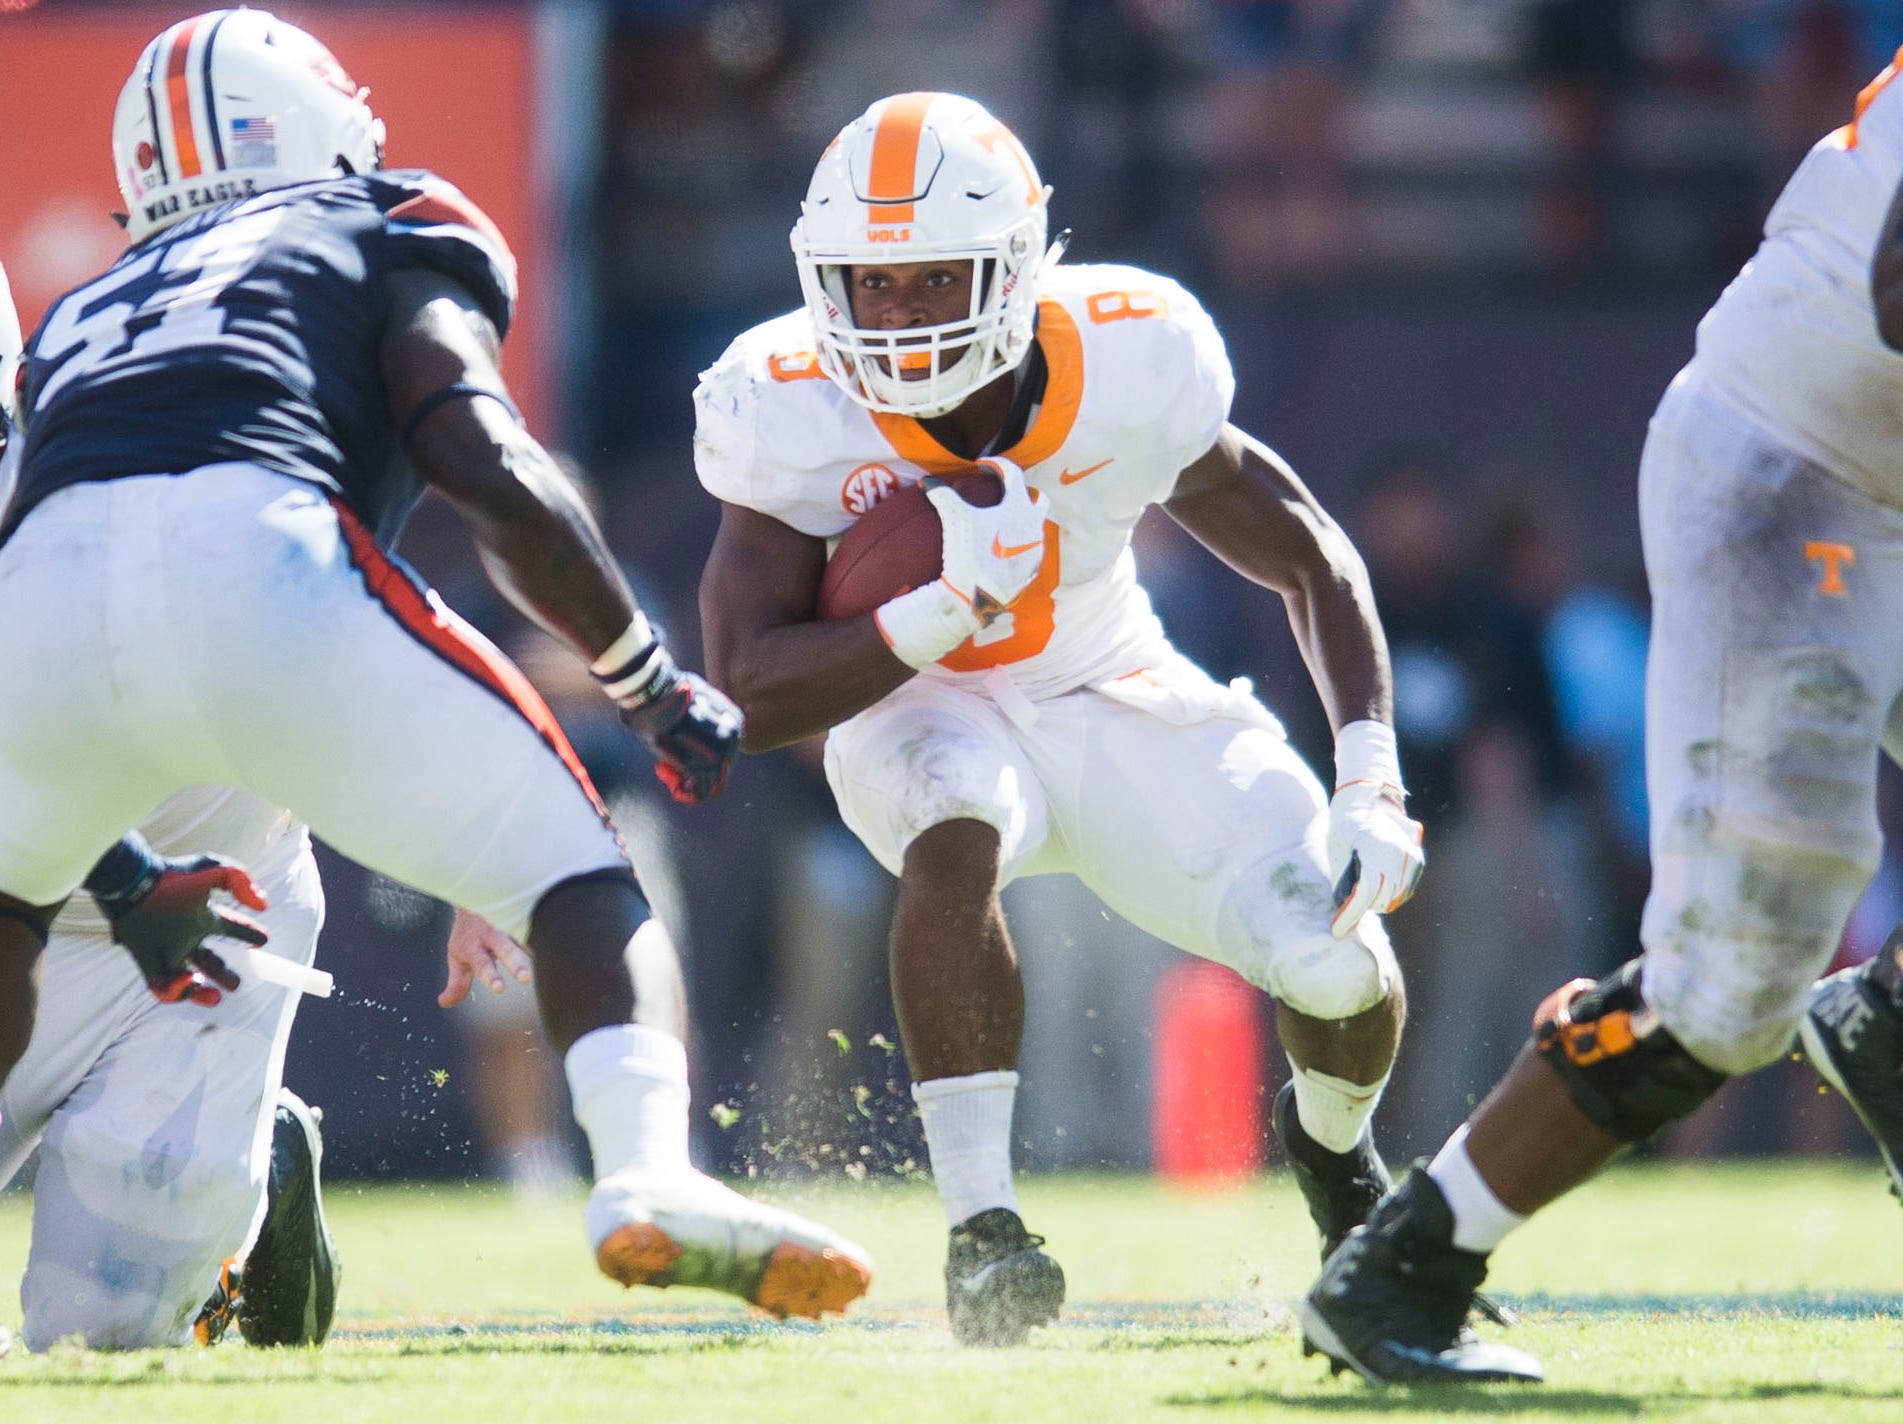 Tennessee running back Ty Chandler (8) runs the ball during a game between Tennessee and Auburn at Jordan-Hare Stadium in Auburn, Ala. Saturday, Oct. 13, 2018. Tennessee defeated Auburn 30-24.